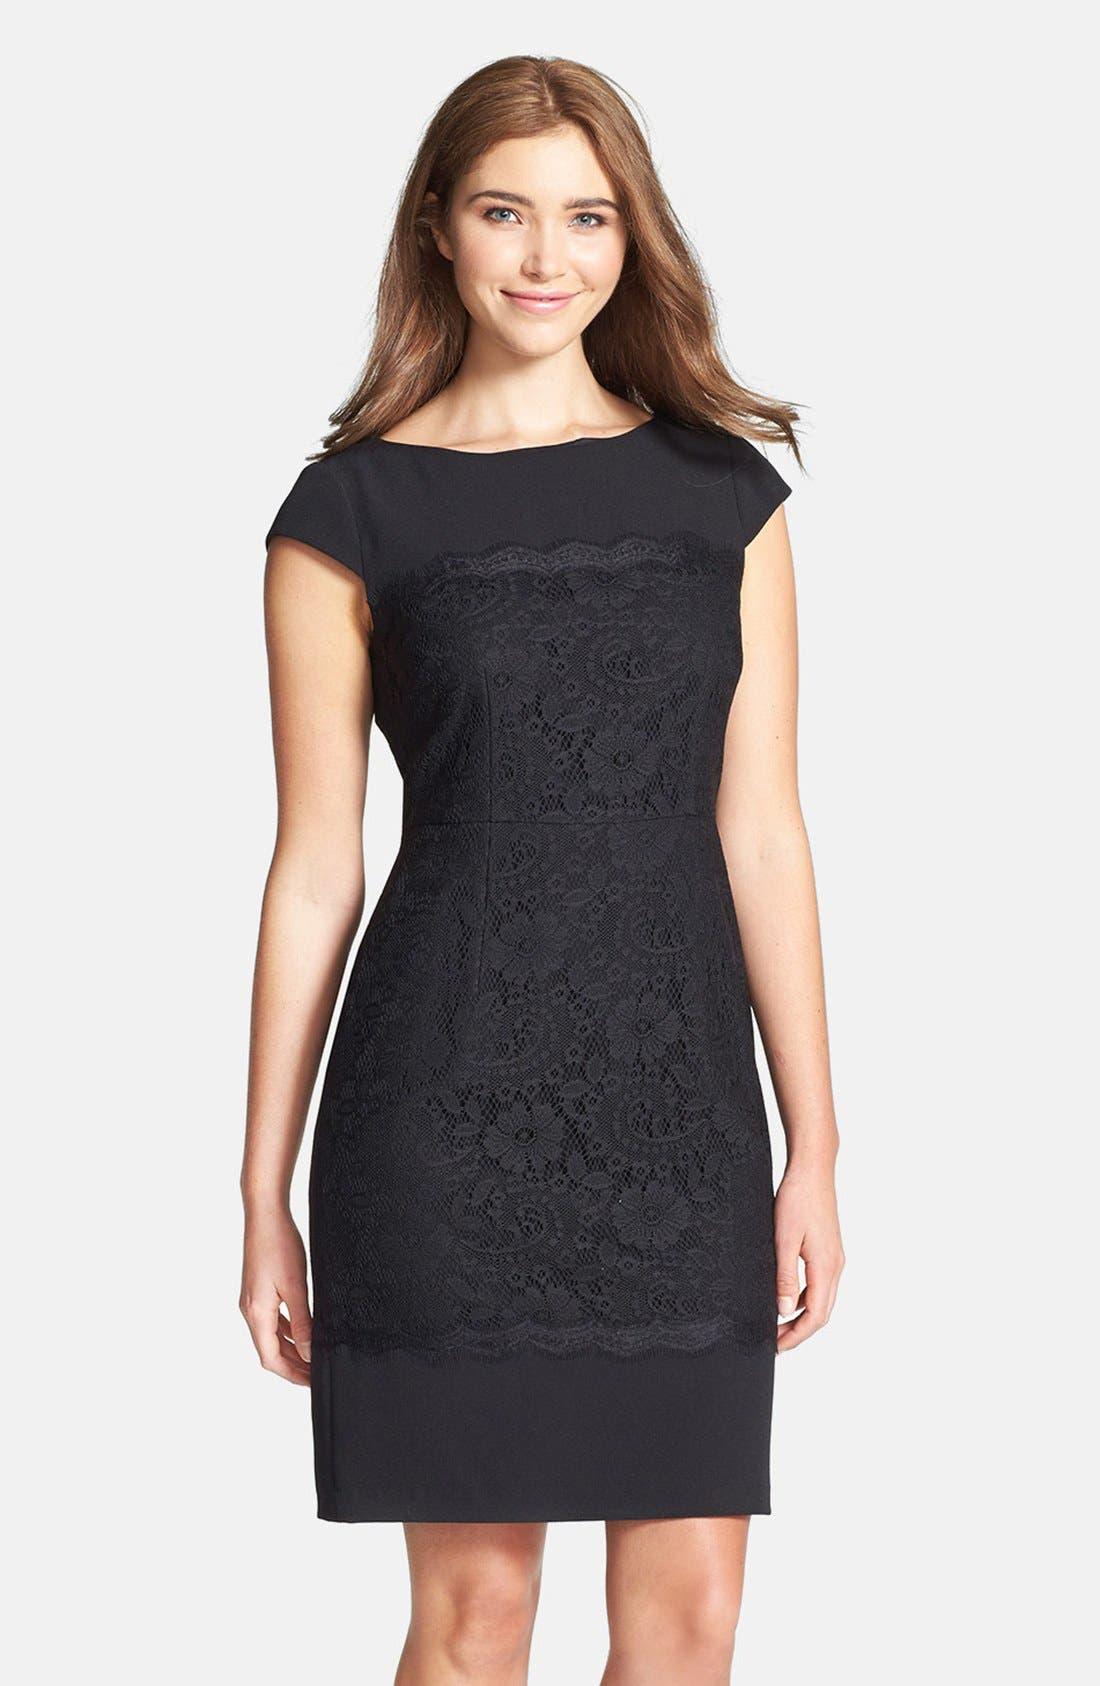 Alternate Image 1 Selected - Adrianna Papell Scalloped Lace Sheath Dress (Regular & Petite)